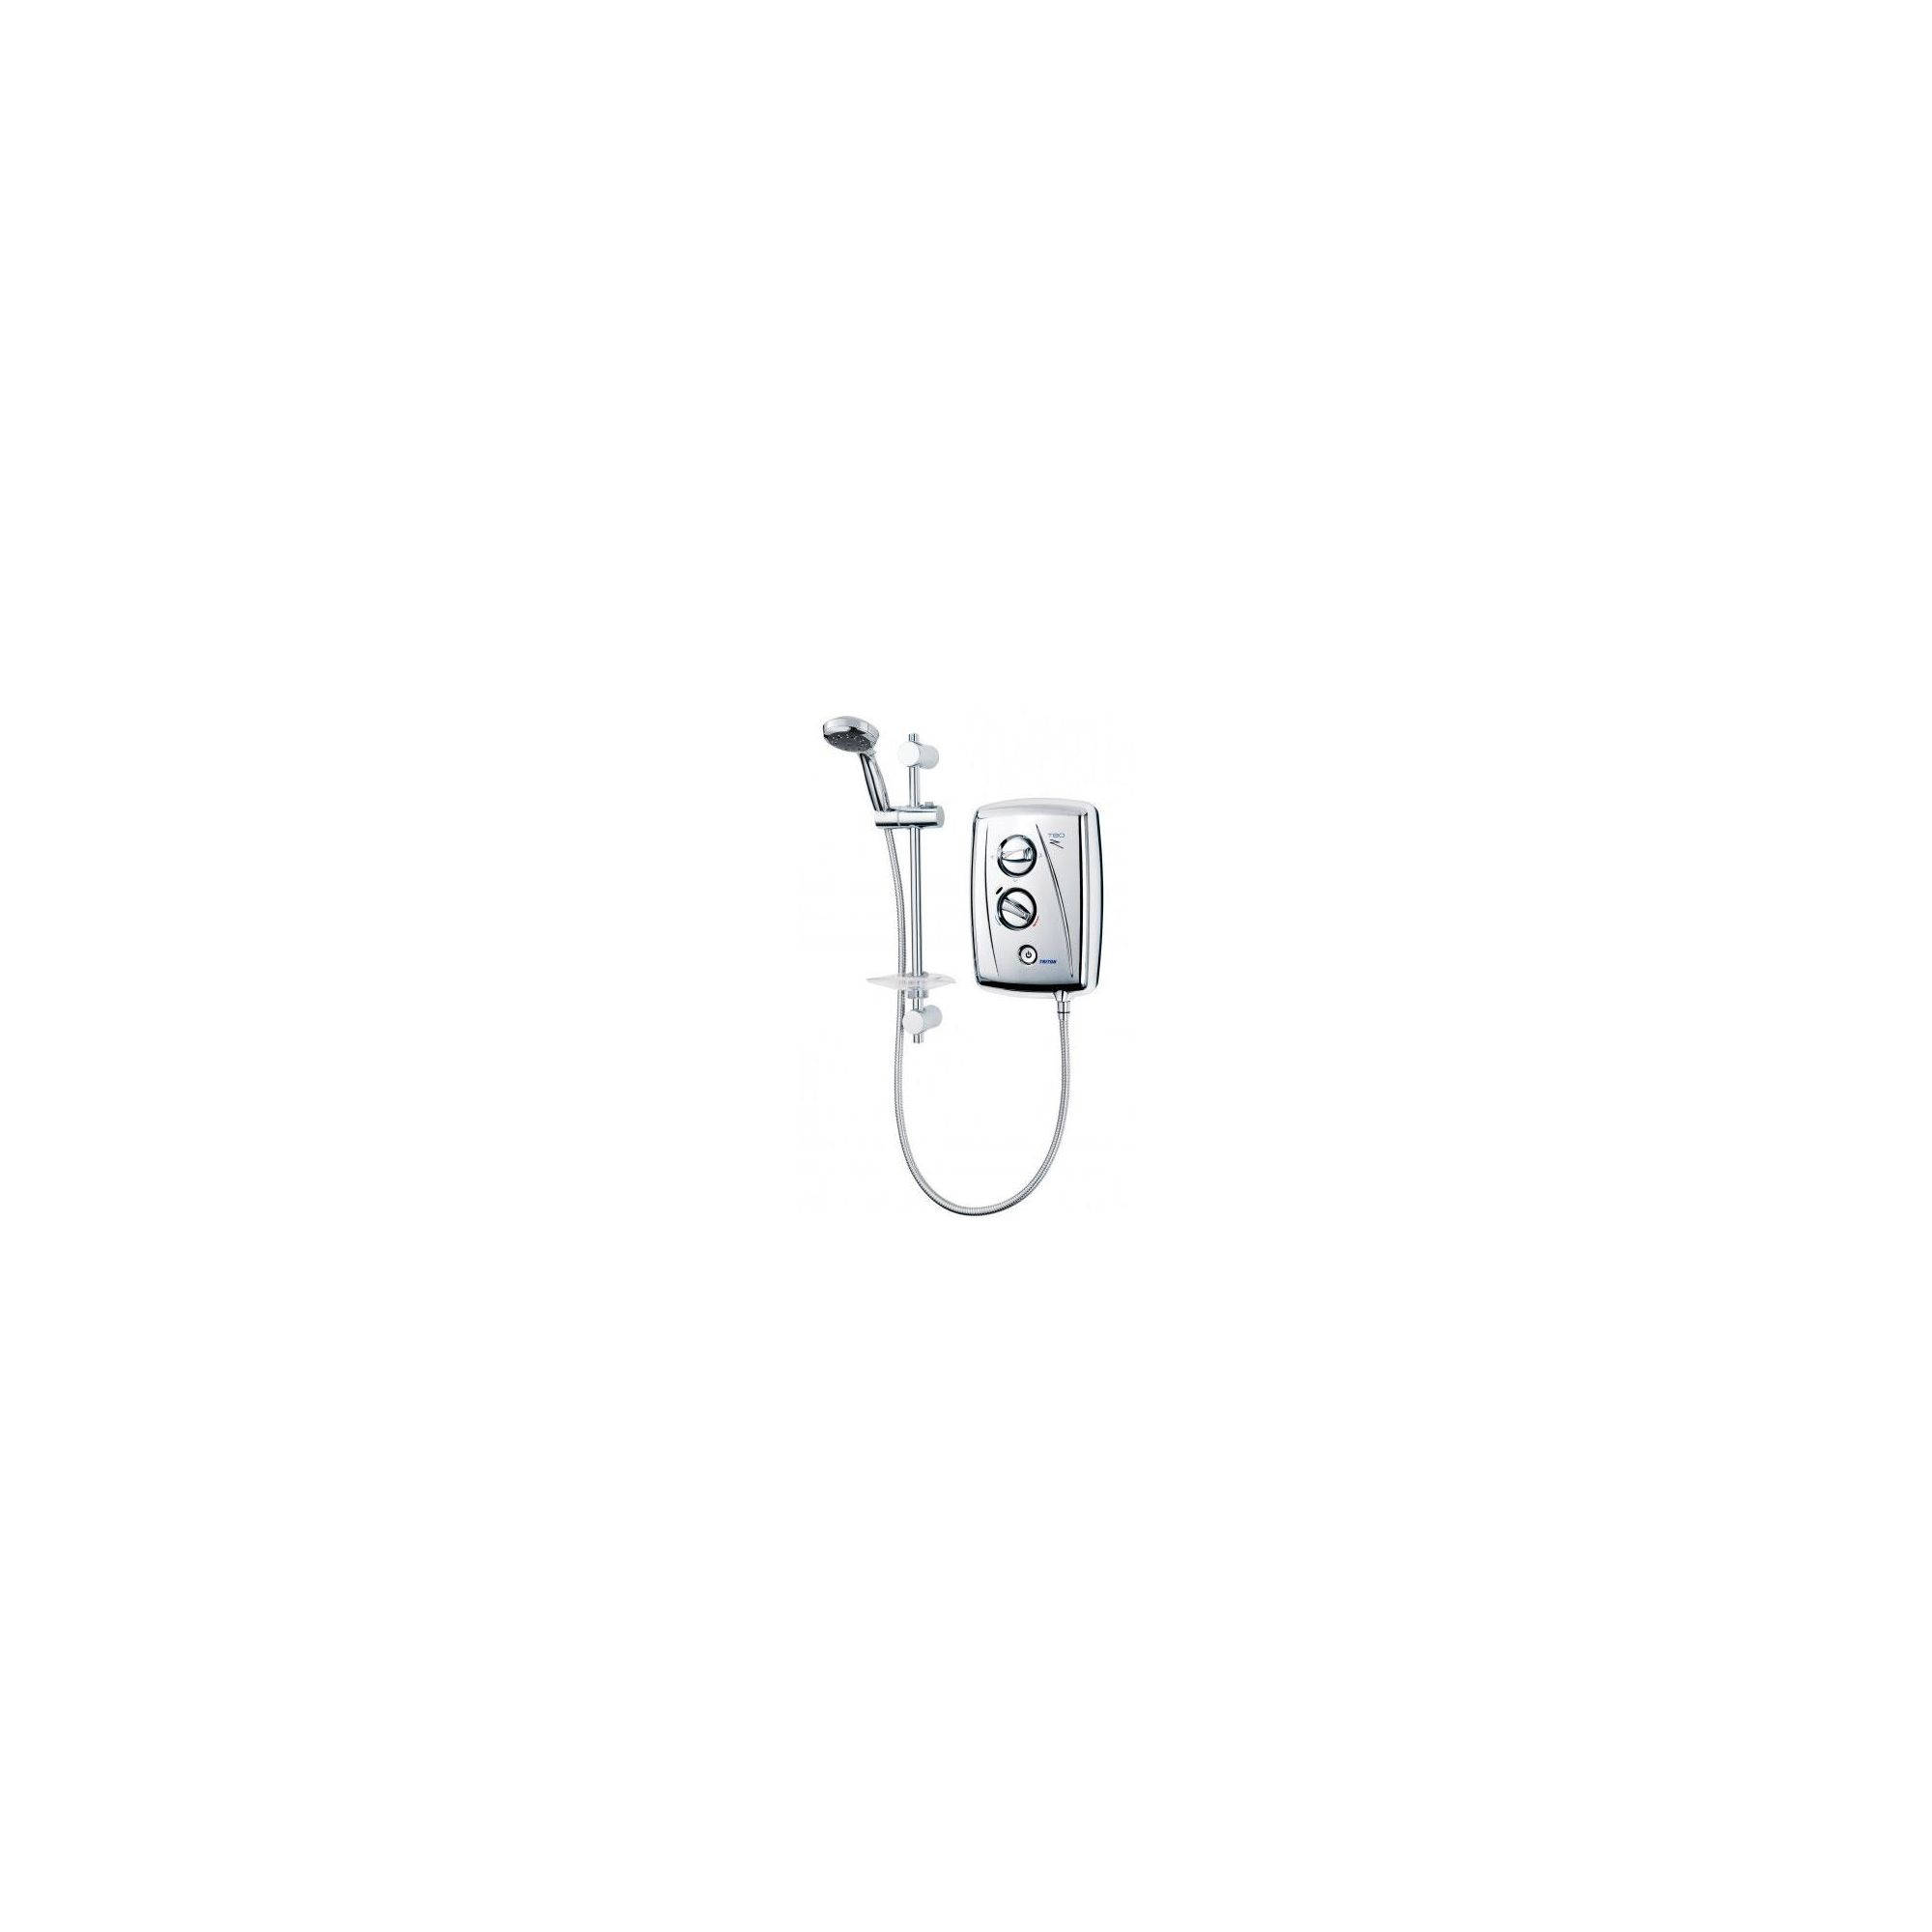 Triton T80Z Fast-Fit Electric Shower Chrome 8.5 kW at Tescos Direct